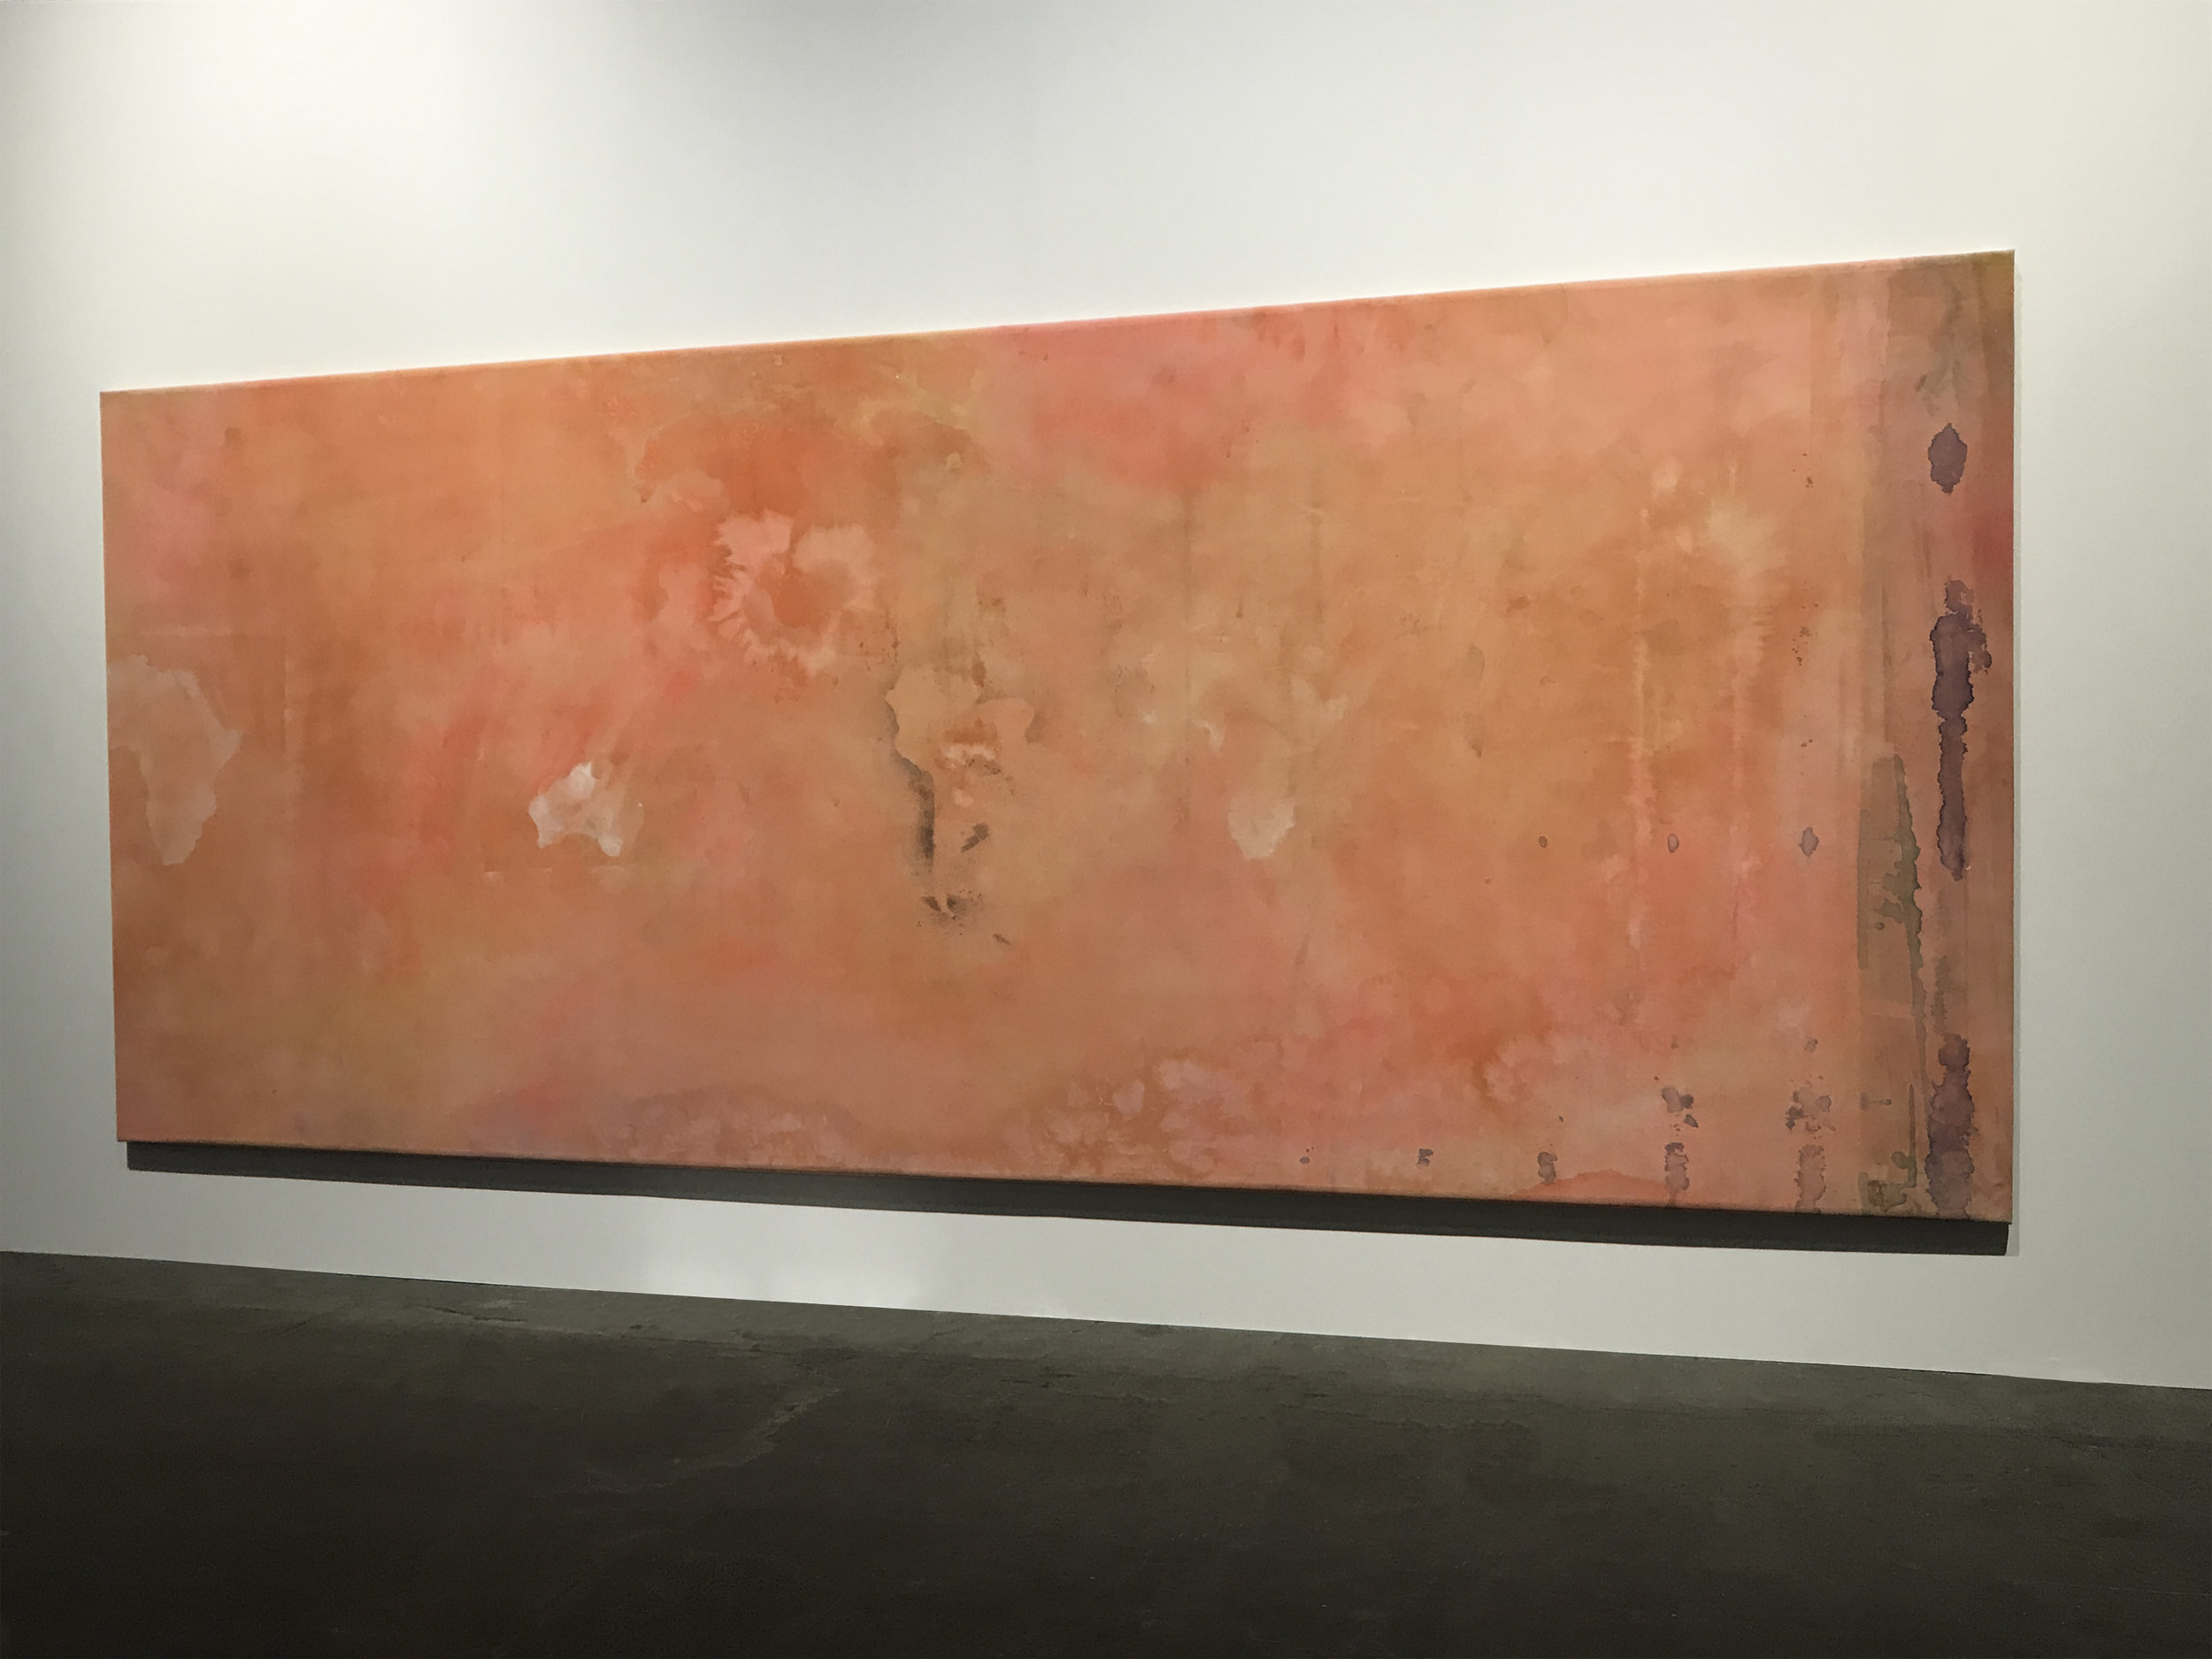 Frank Bowling,  False Start , 1970 on display at Alexander Gray Associates - Basel   Unlimited 2018 Painting, Acrylic and spray paint on canvas, Size 534.0 × 223.0 cm / 210.2 × 87.8 in